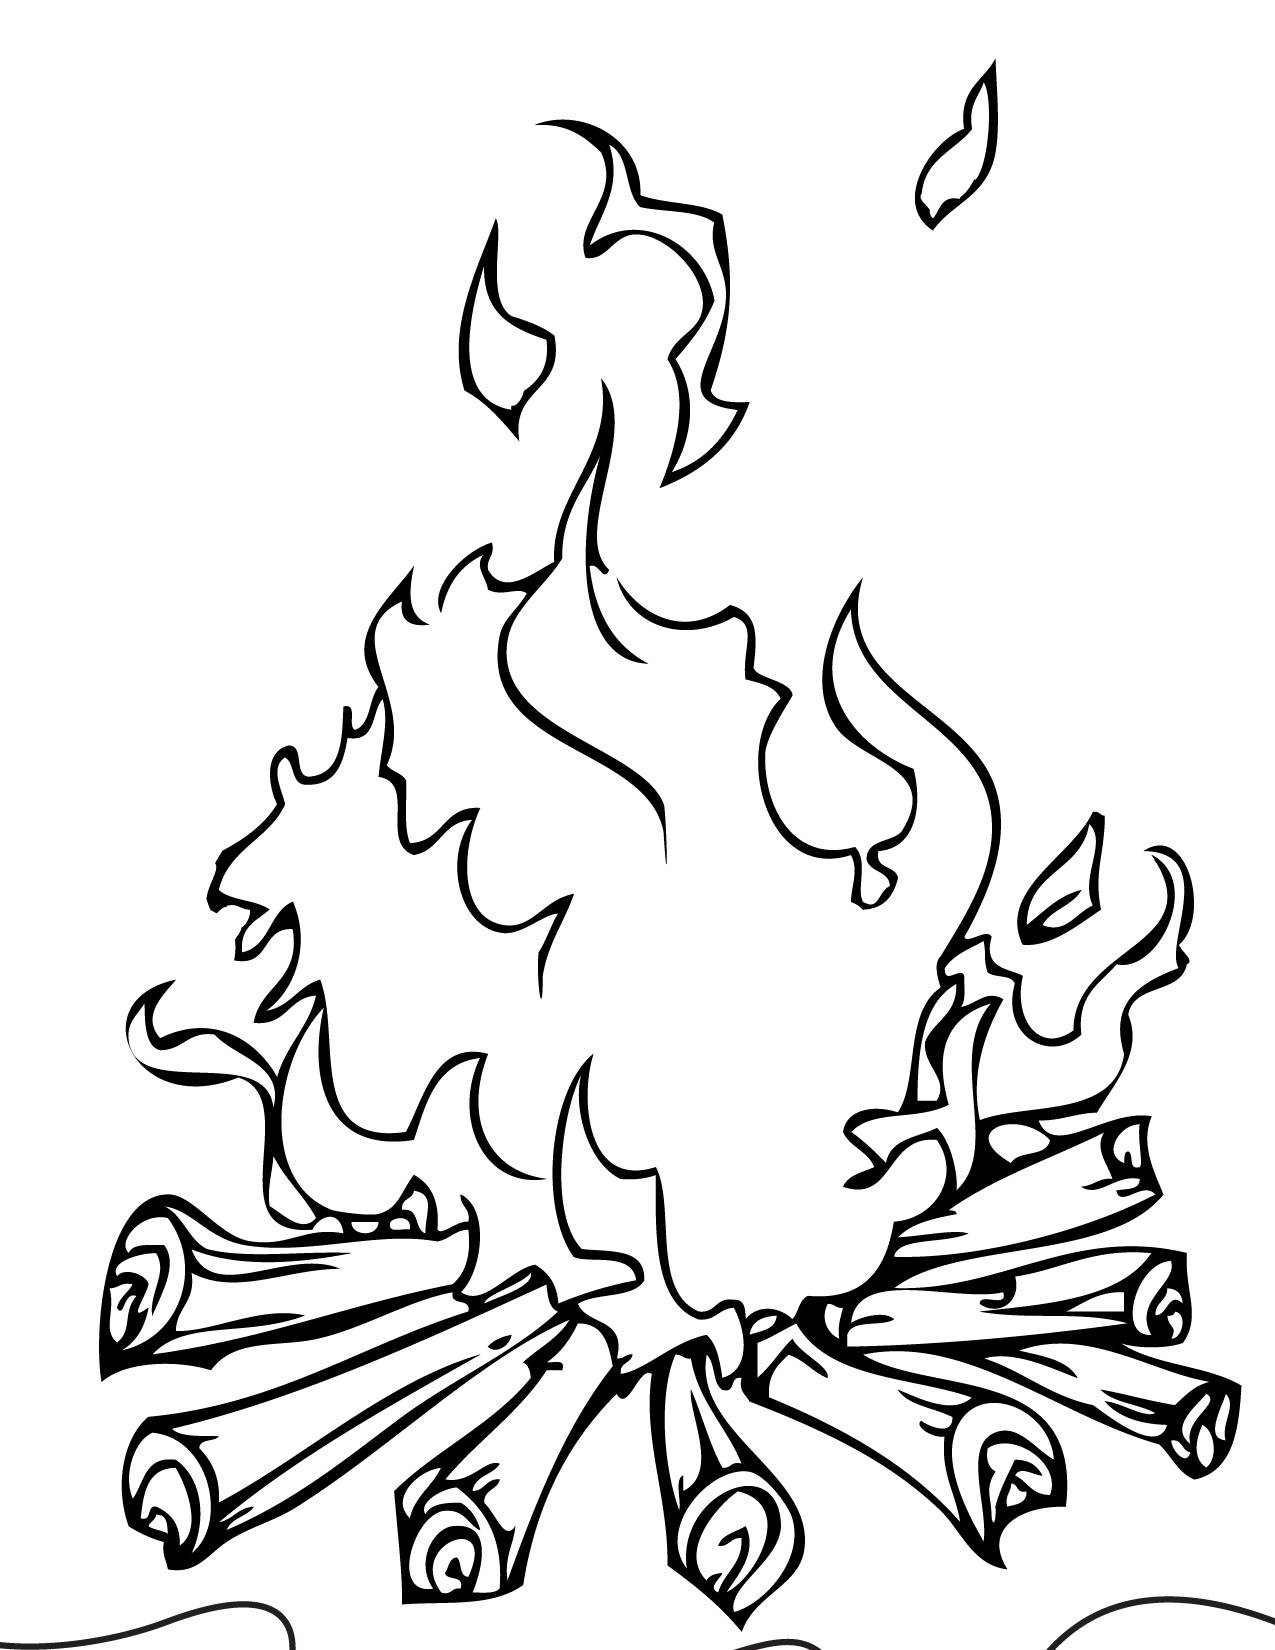 1275x1650 Flame Coloring Page Image And Eson Me